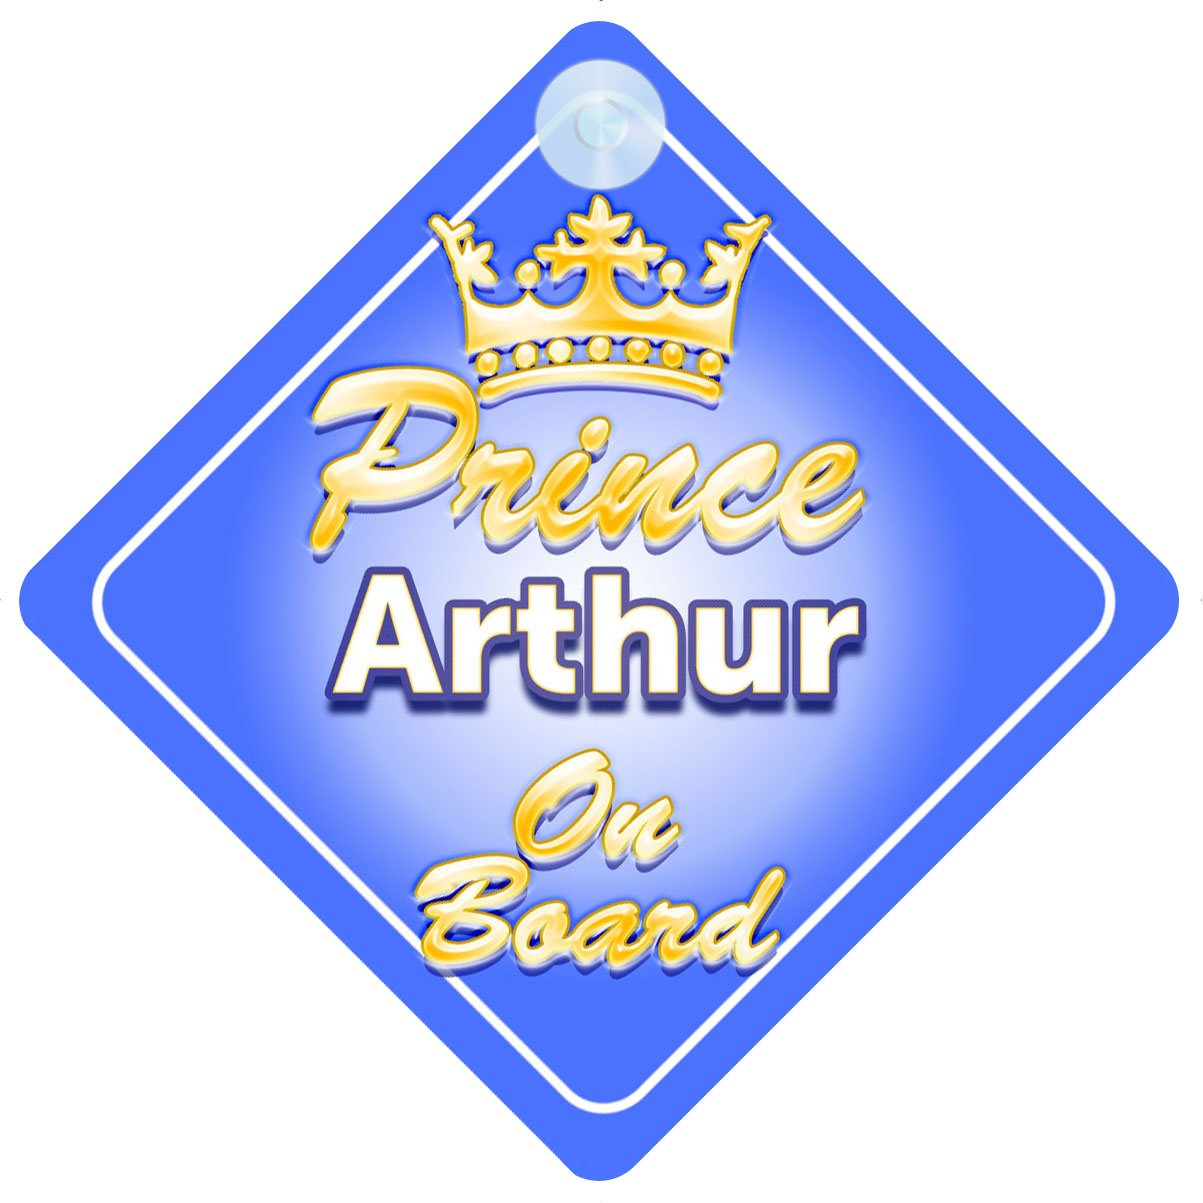 Crown Prince Arthur On Board Personalised Baby / Child Boys Car Sign Quality Goods Ltd